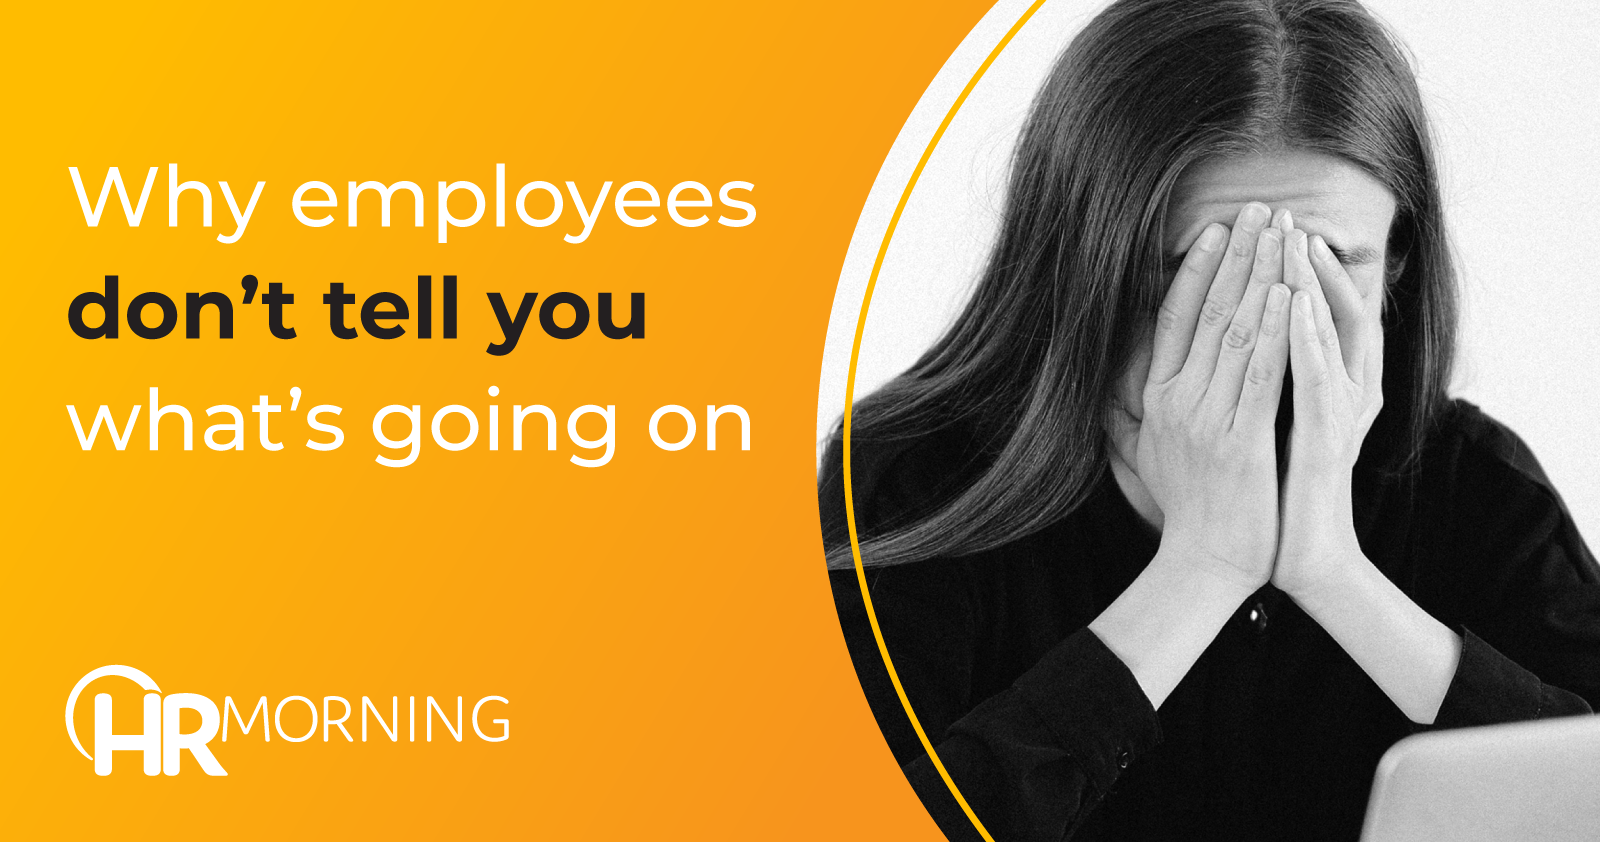 69% of workers don't trust HR: 6 ways to turn it around